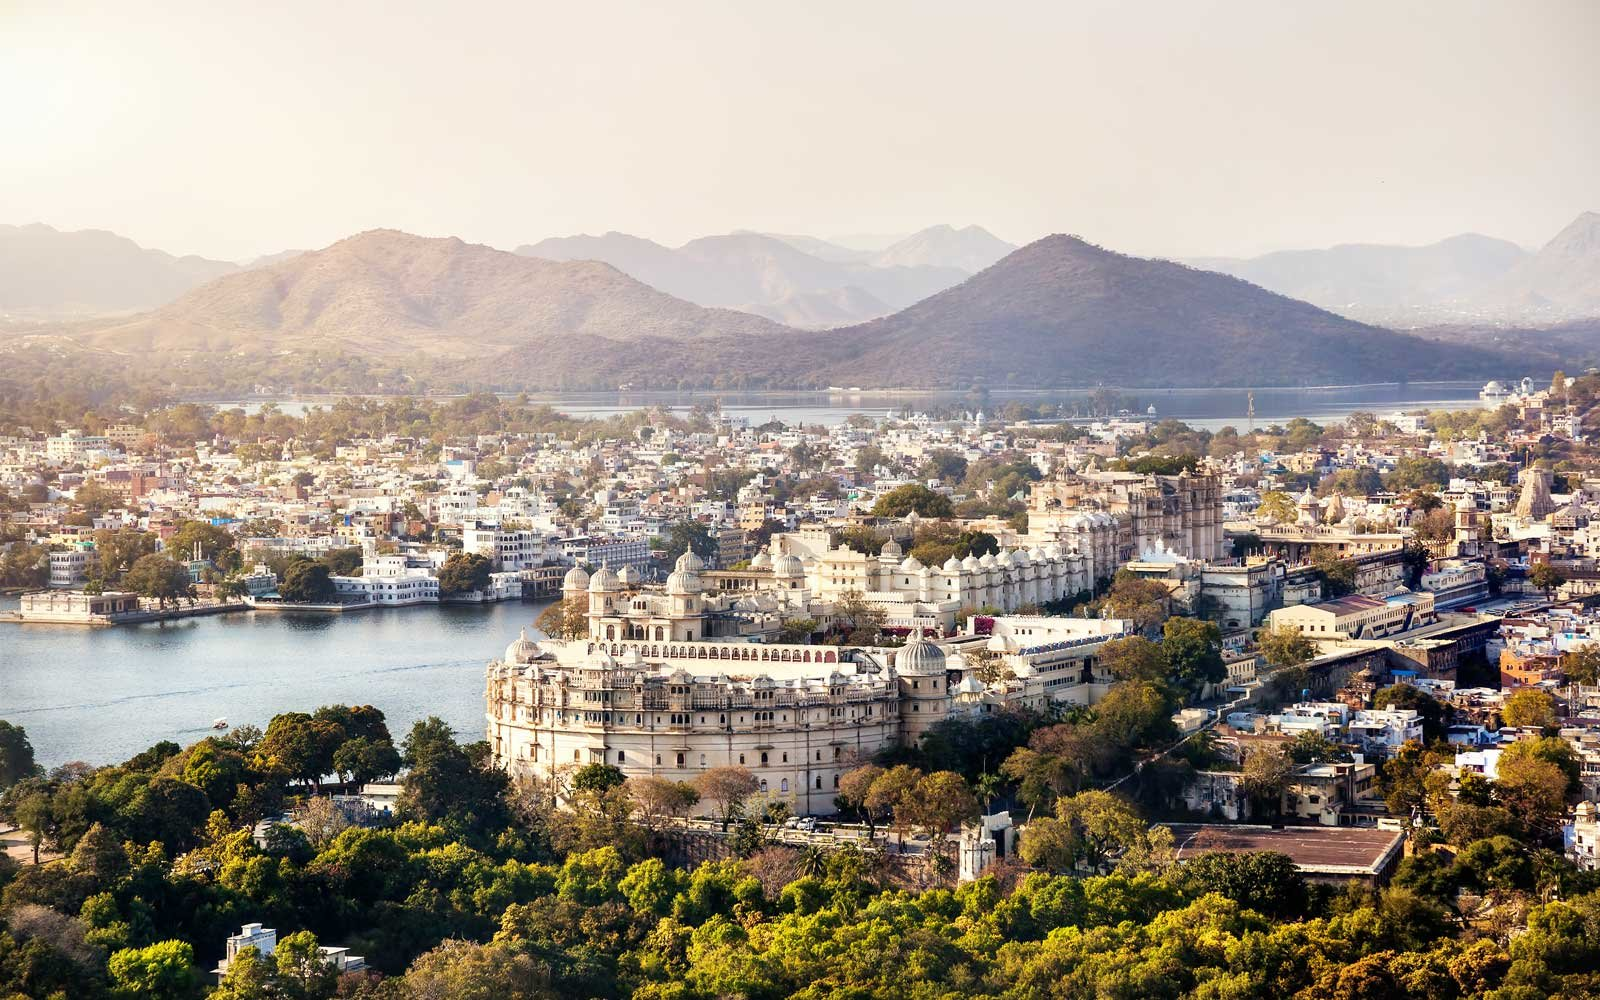 Lake Pichola and City Palace in Udaipur, India